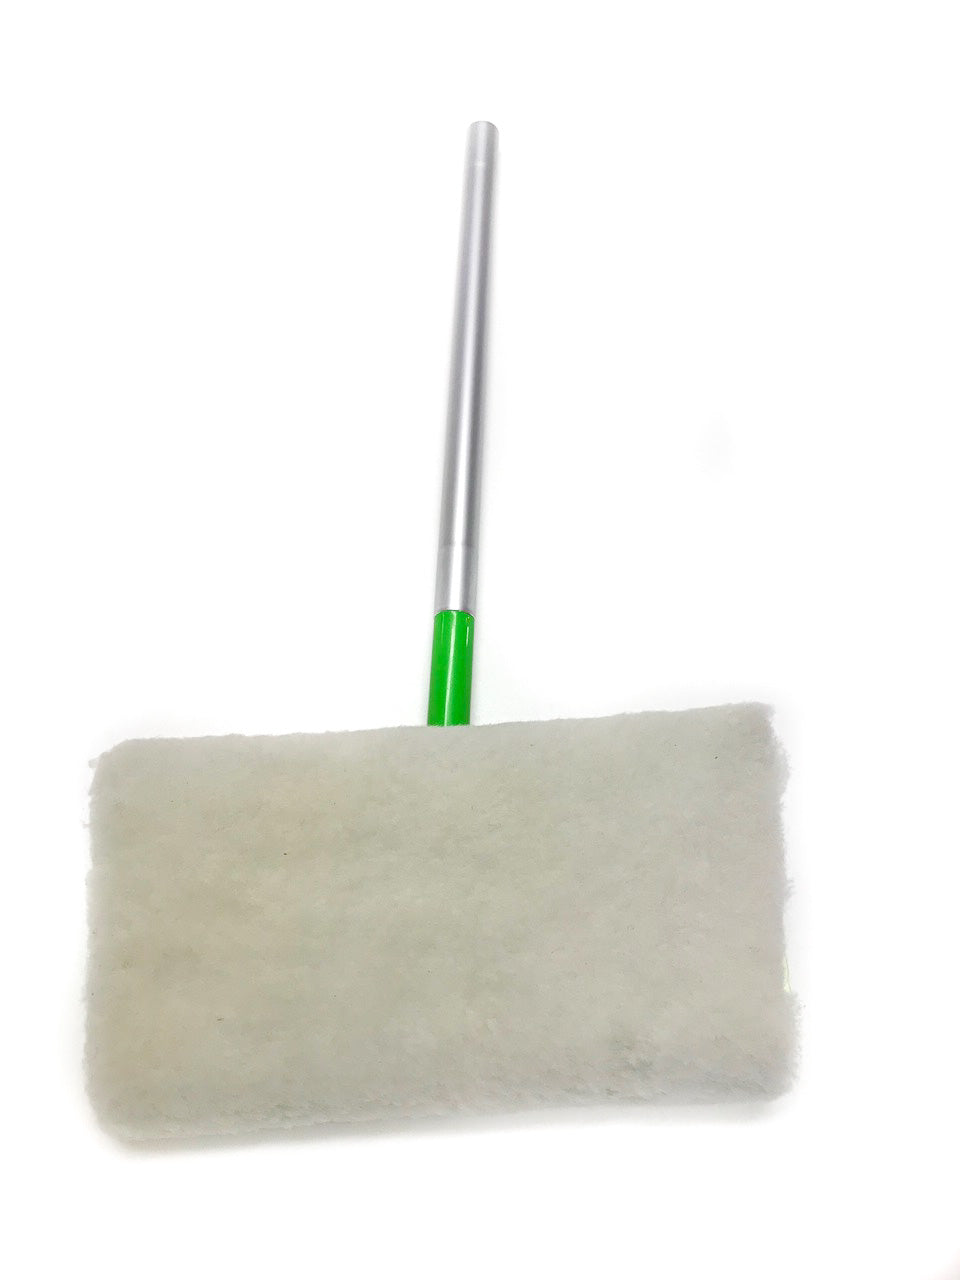 Sheepskin Wool Floor Duster